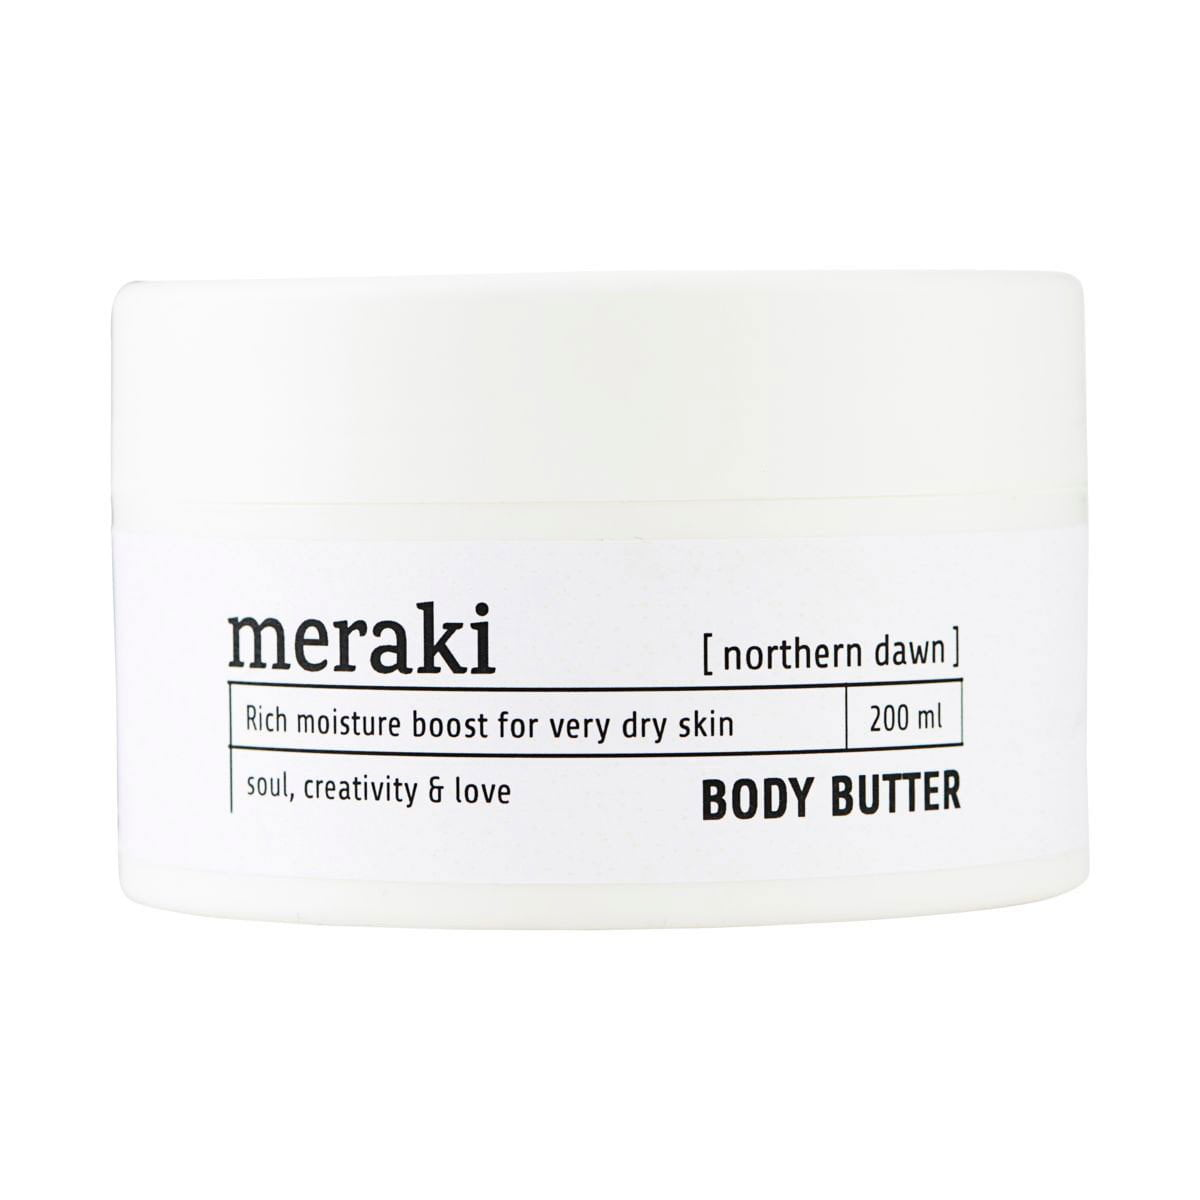 Meraki body butter burro corpo northern dawn